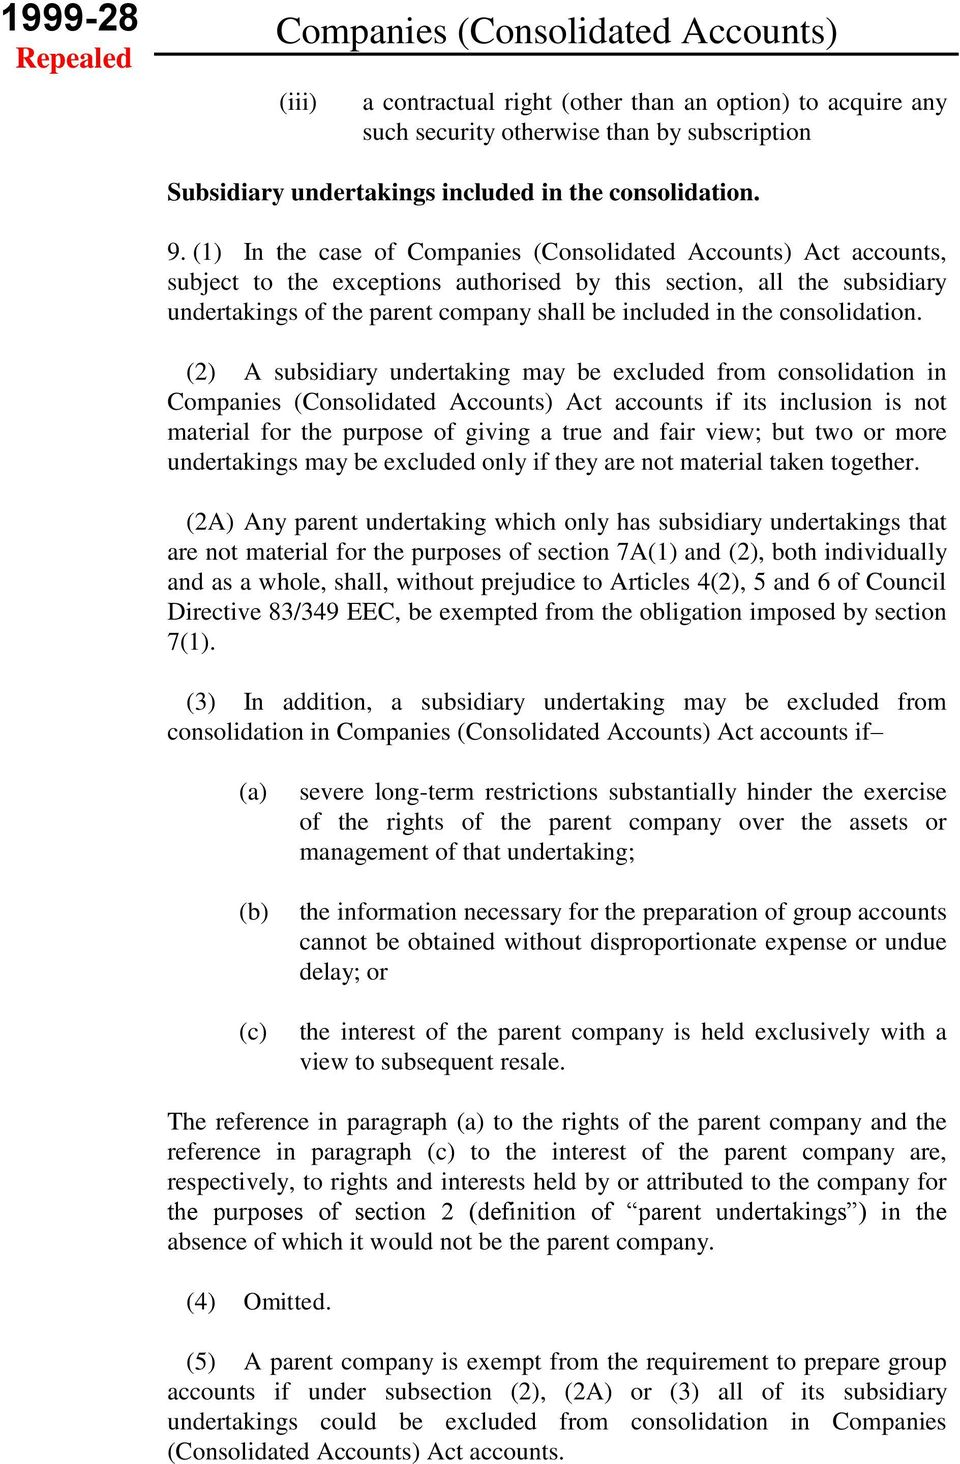 (1) In the case of Companies (Consolidated Accounts) Act accounts, subject to the exceptions authorised by this section, all the subsidiary undertakings of the parent company shall be included in the